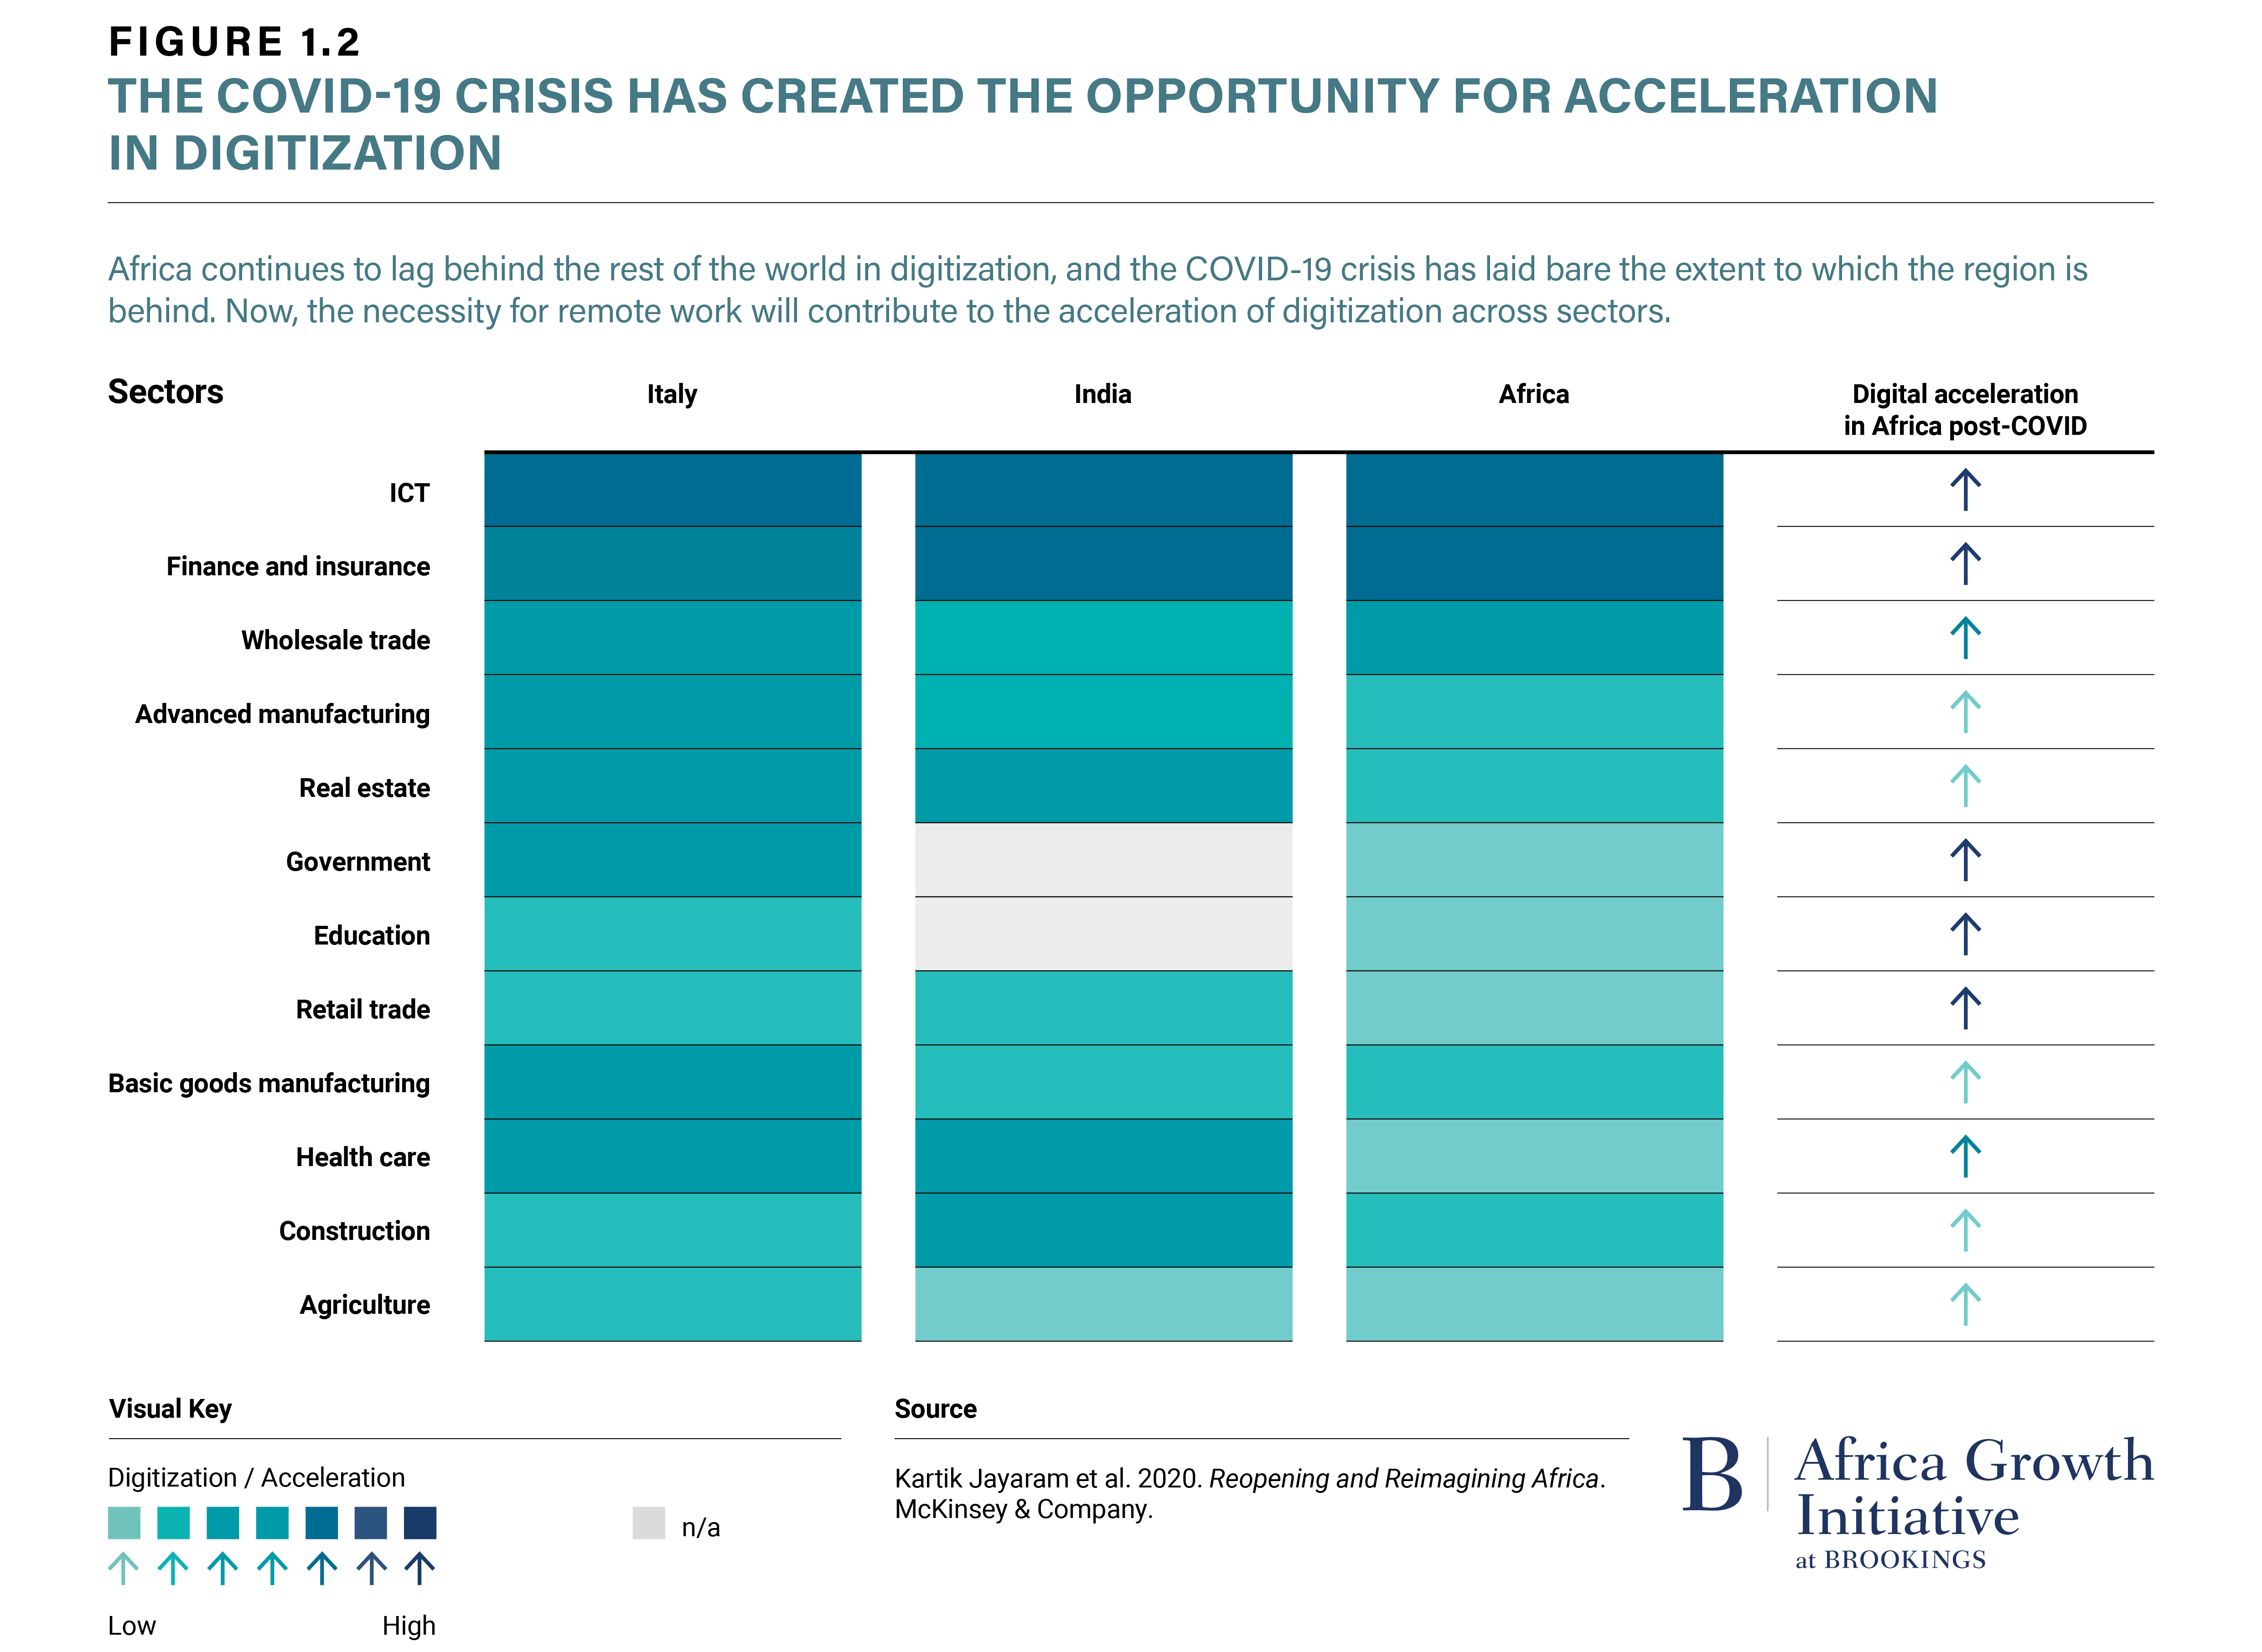 Figure 1.2 The COVID-19 Crisis Has Created the Opportunity for Acceleration in Digitization